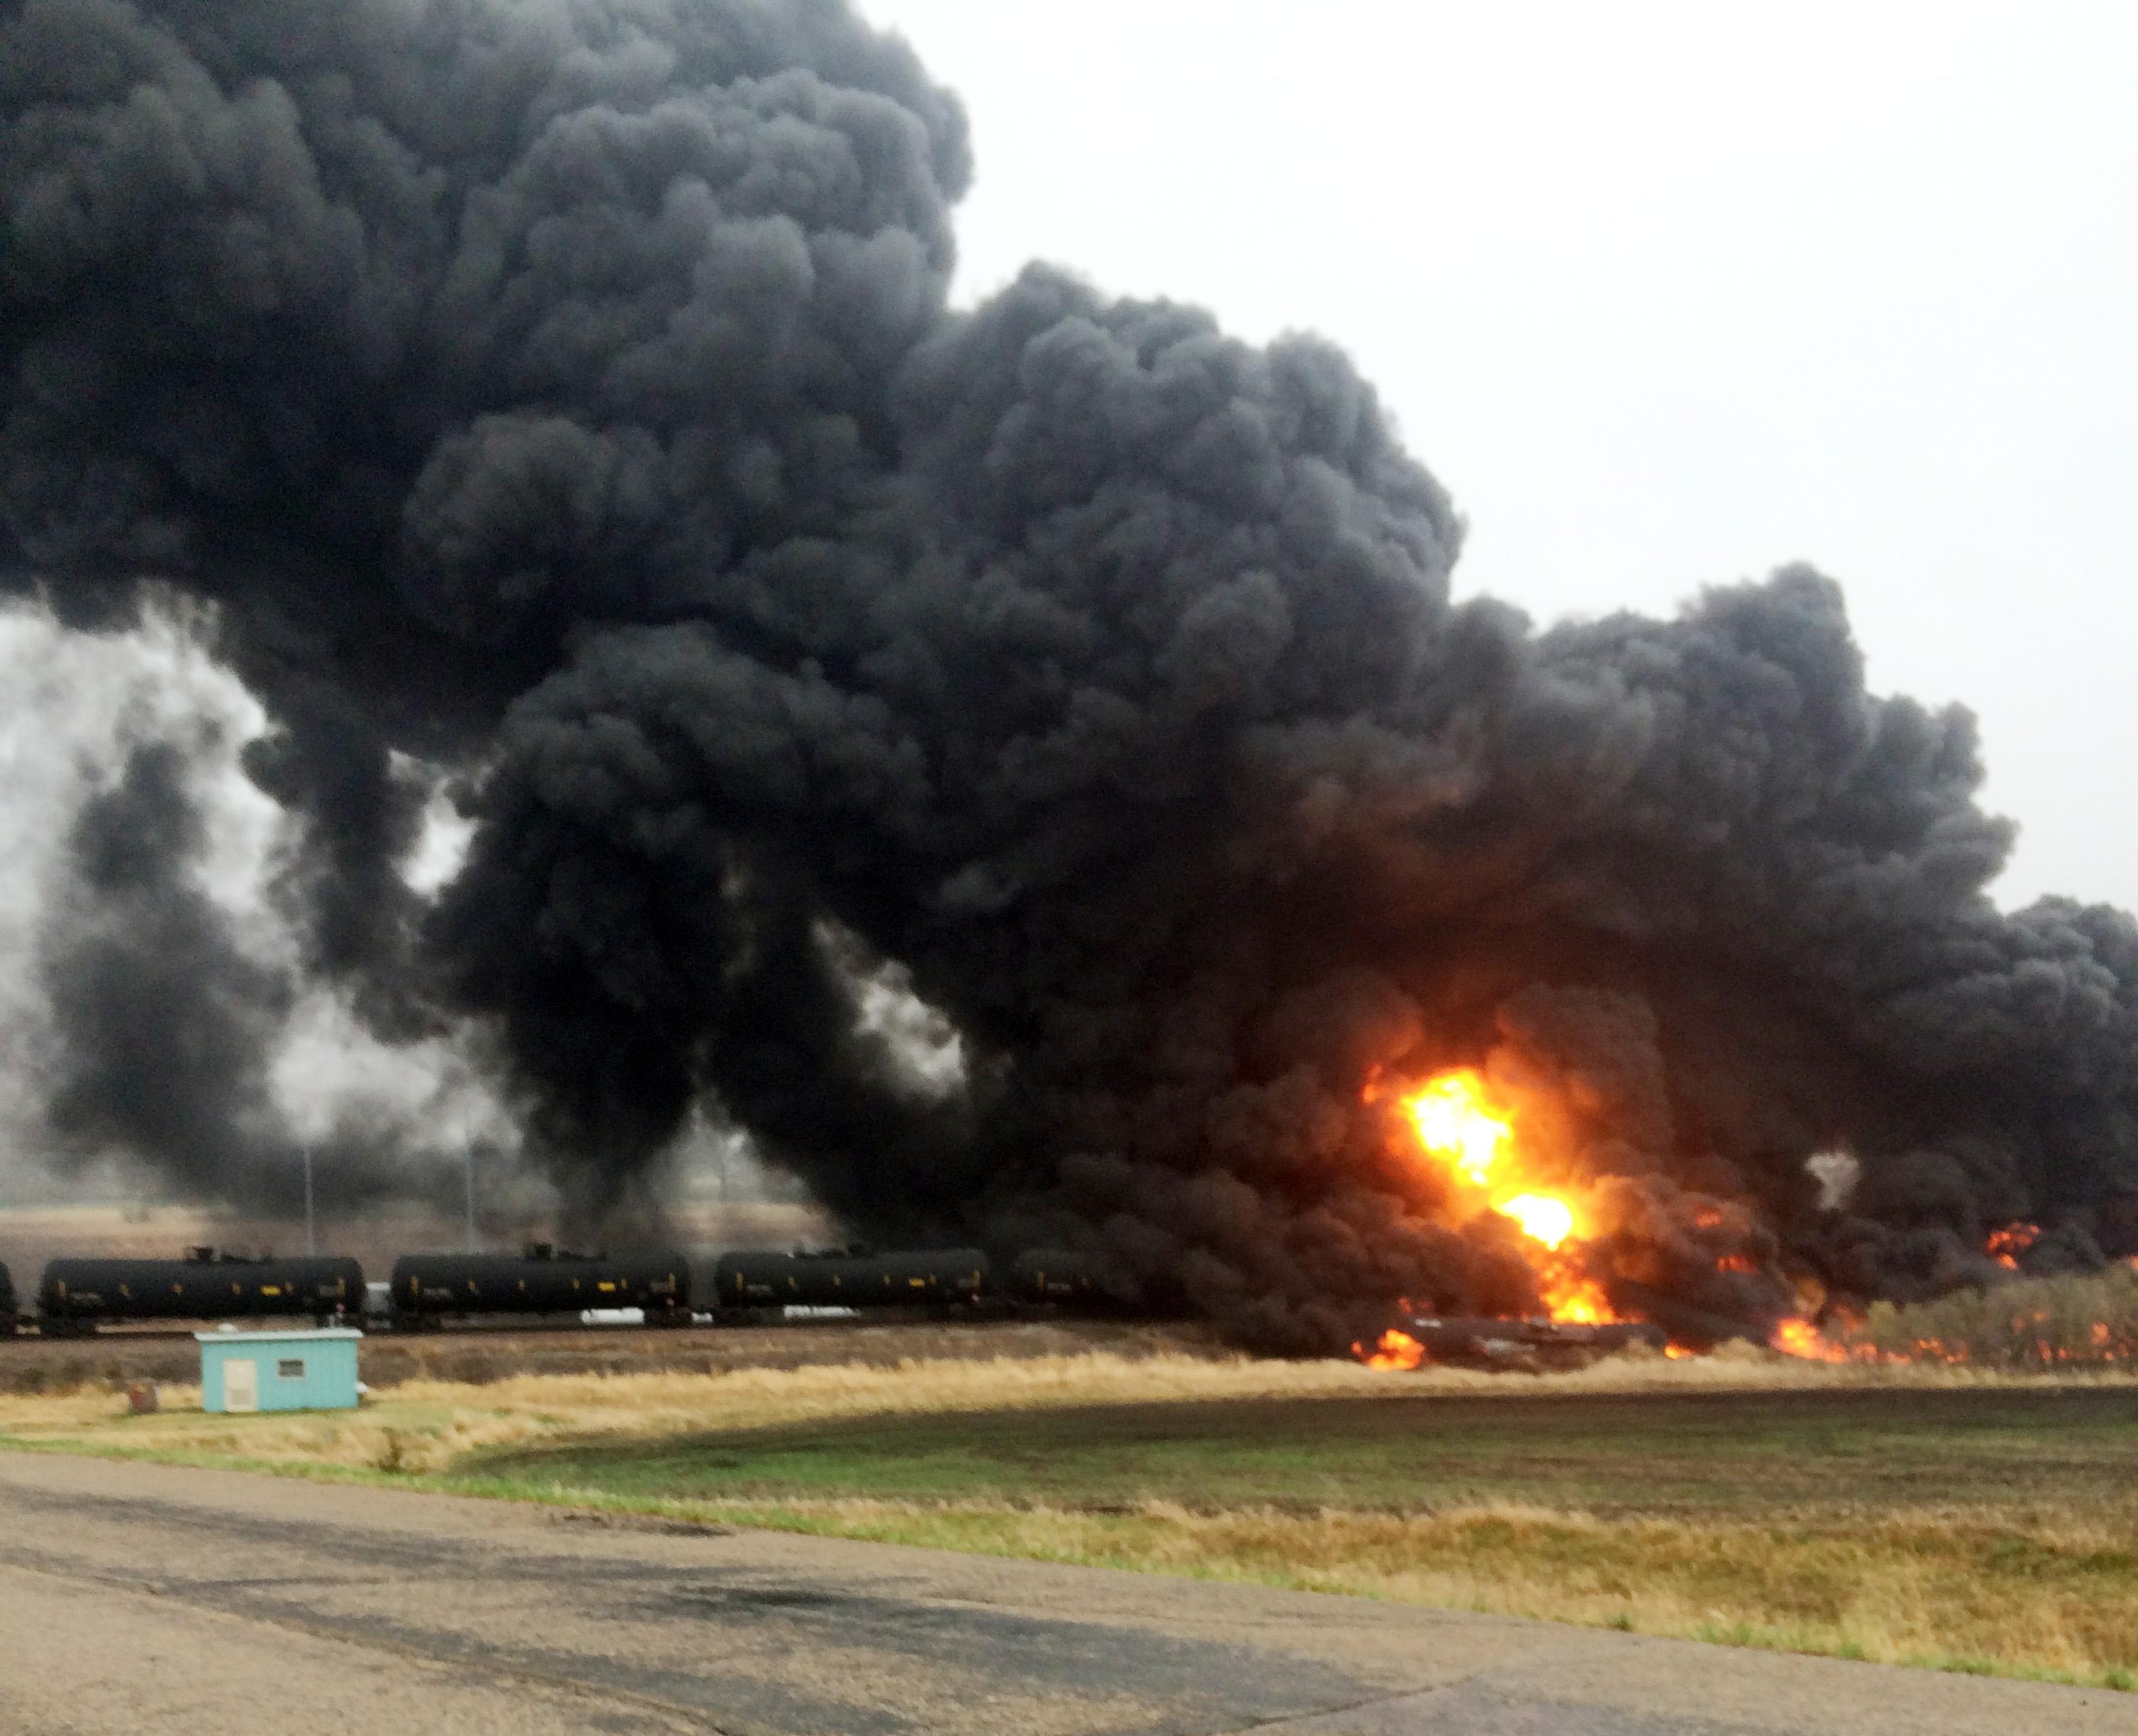 Oil train derailment prompts evacuation in North Dakota town